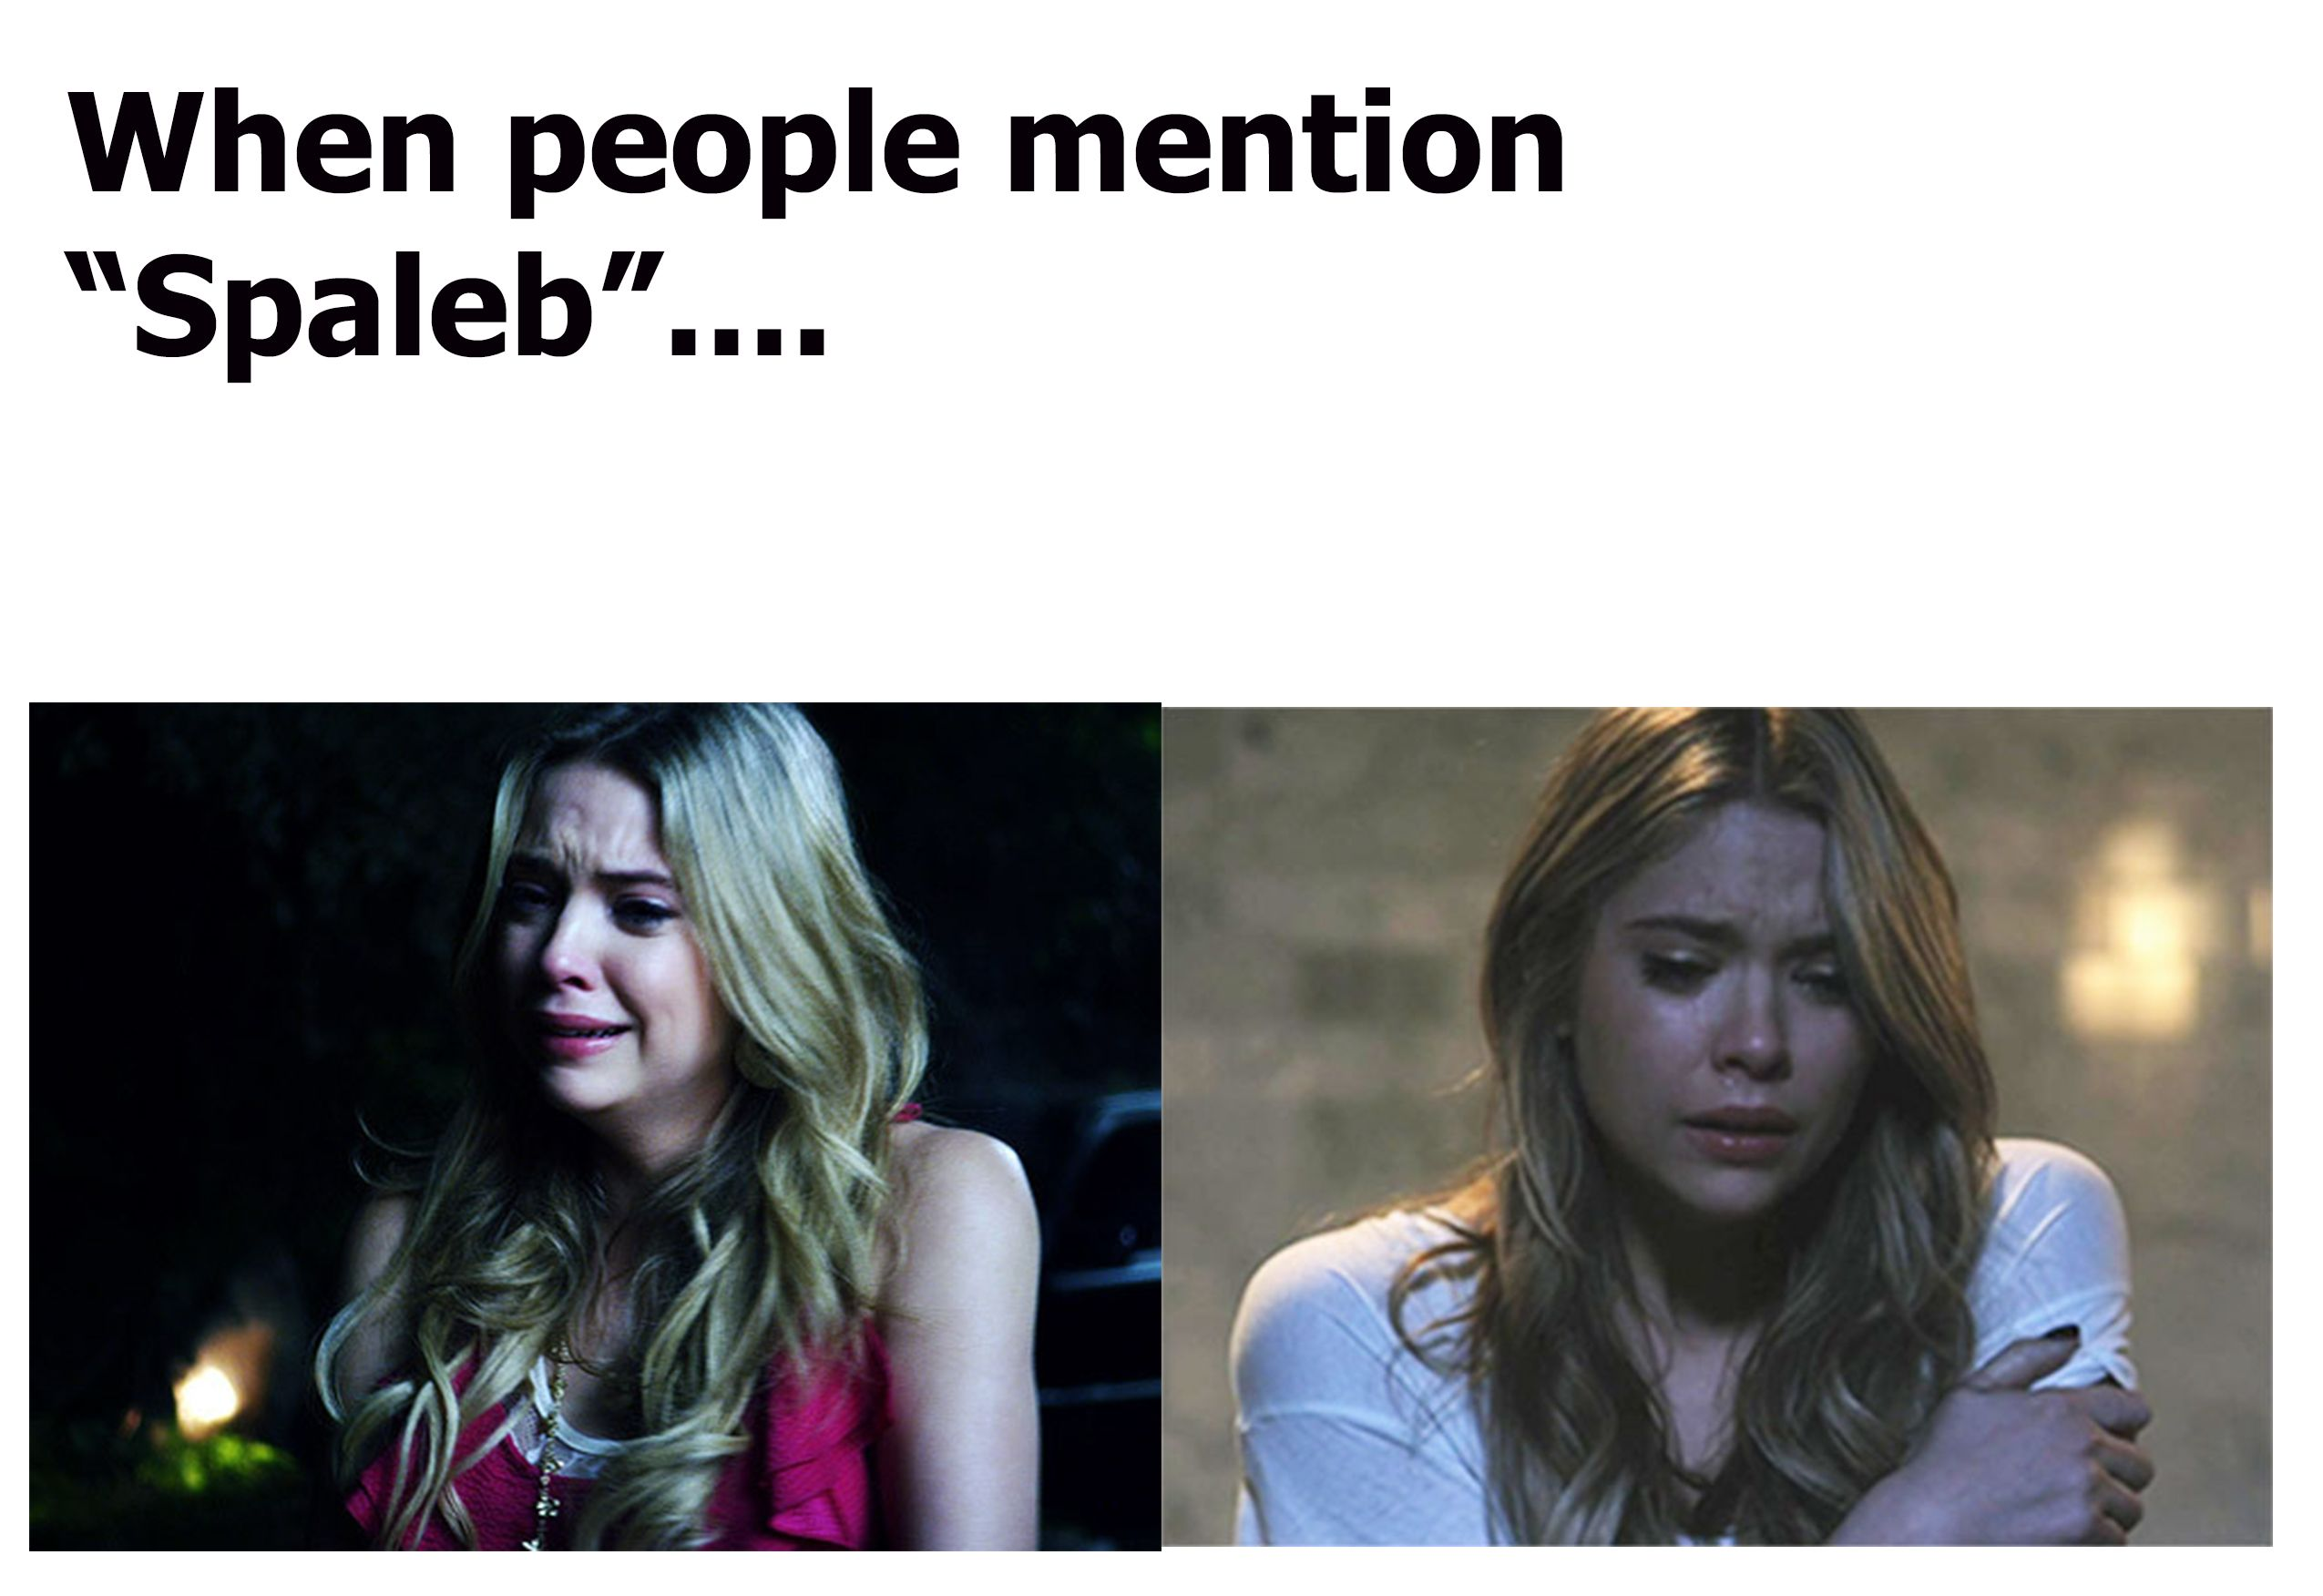 The actual pictures are of Ashley Benson from google.com I just added the text.